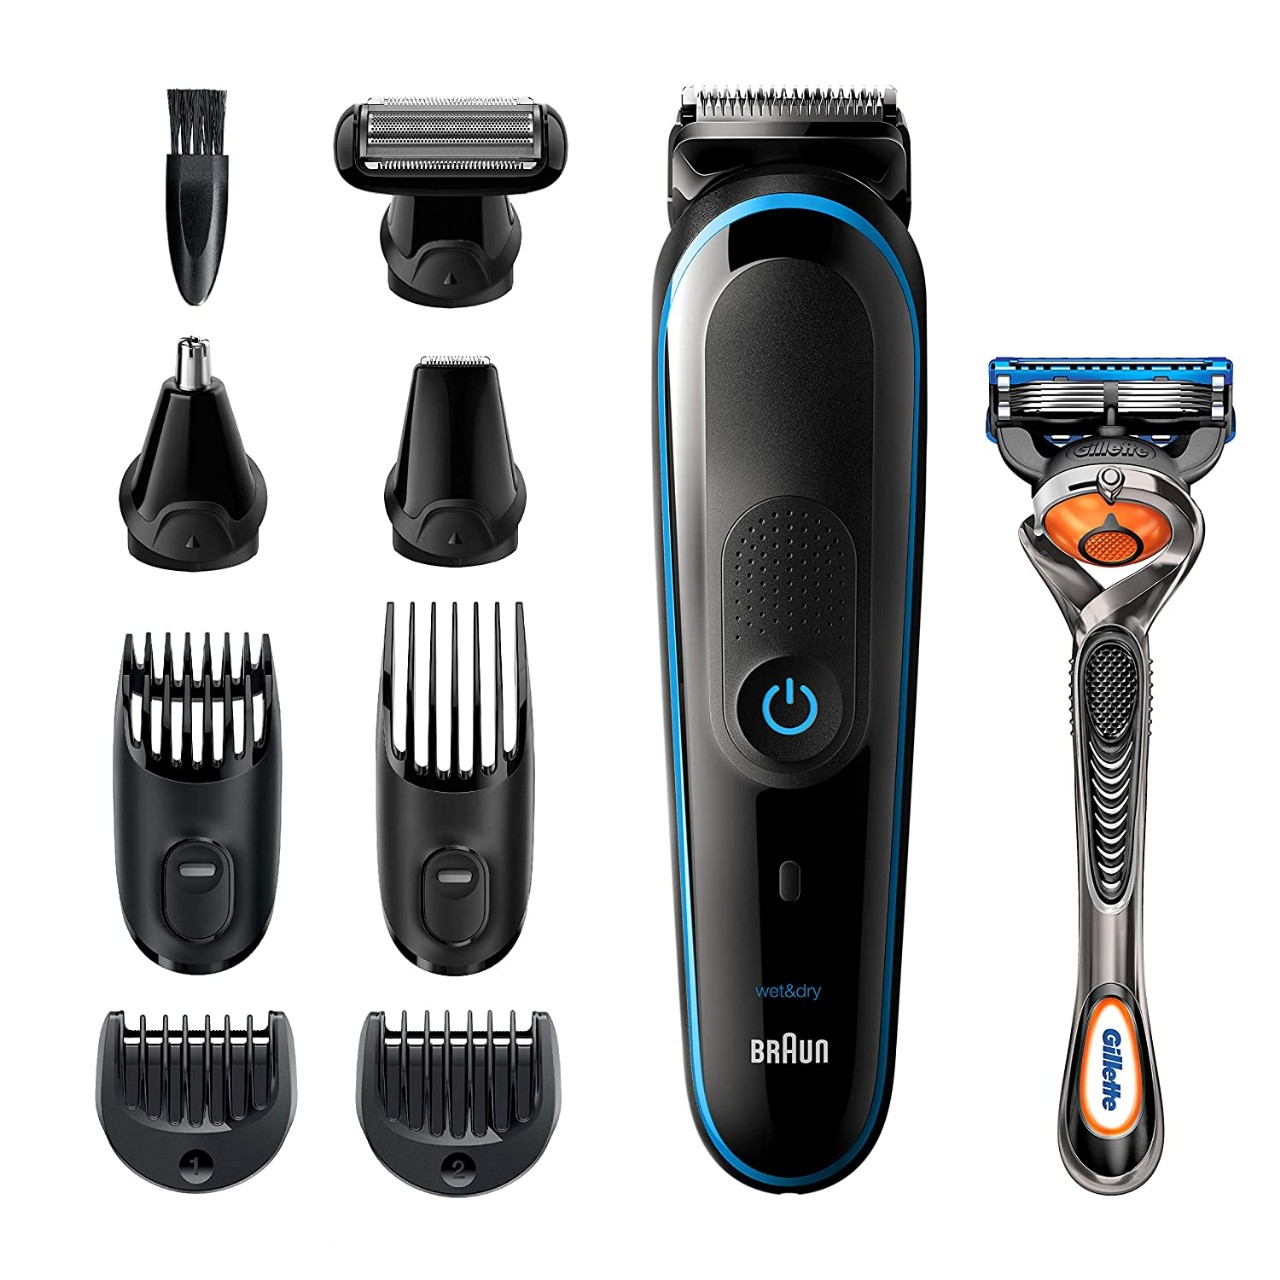 Braun All-in-one trimmer MGK5280, 9-in-1 Beard Trimmer, Hair Clipper, Ear and Nose Trimmer, Body